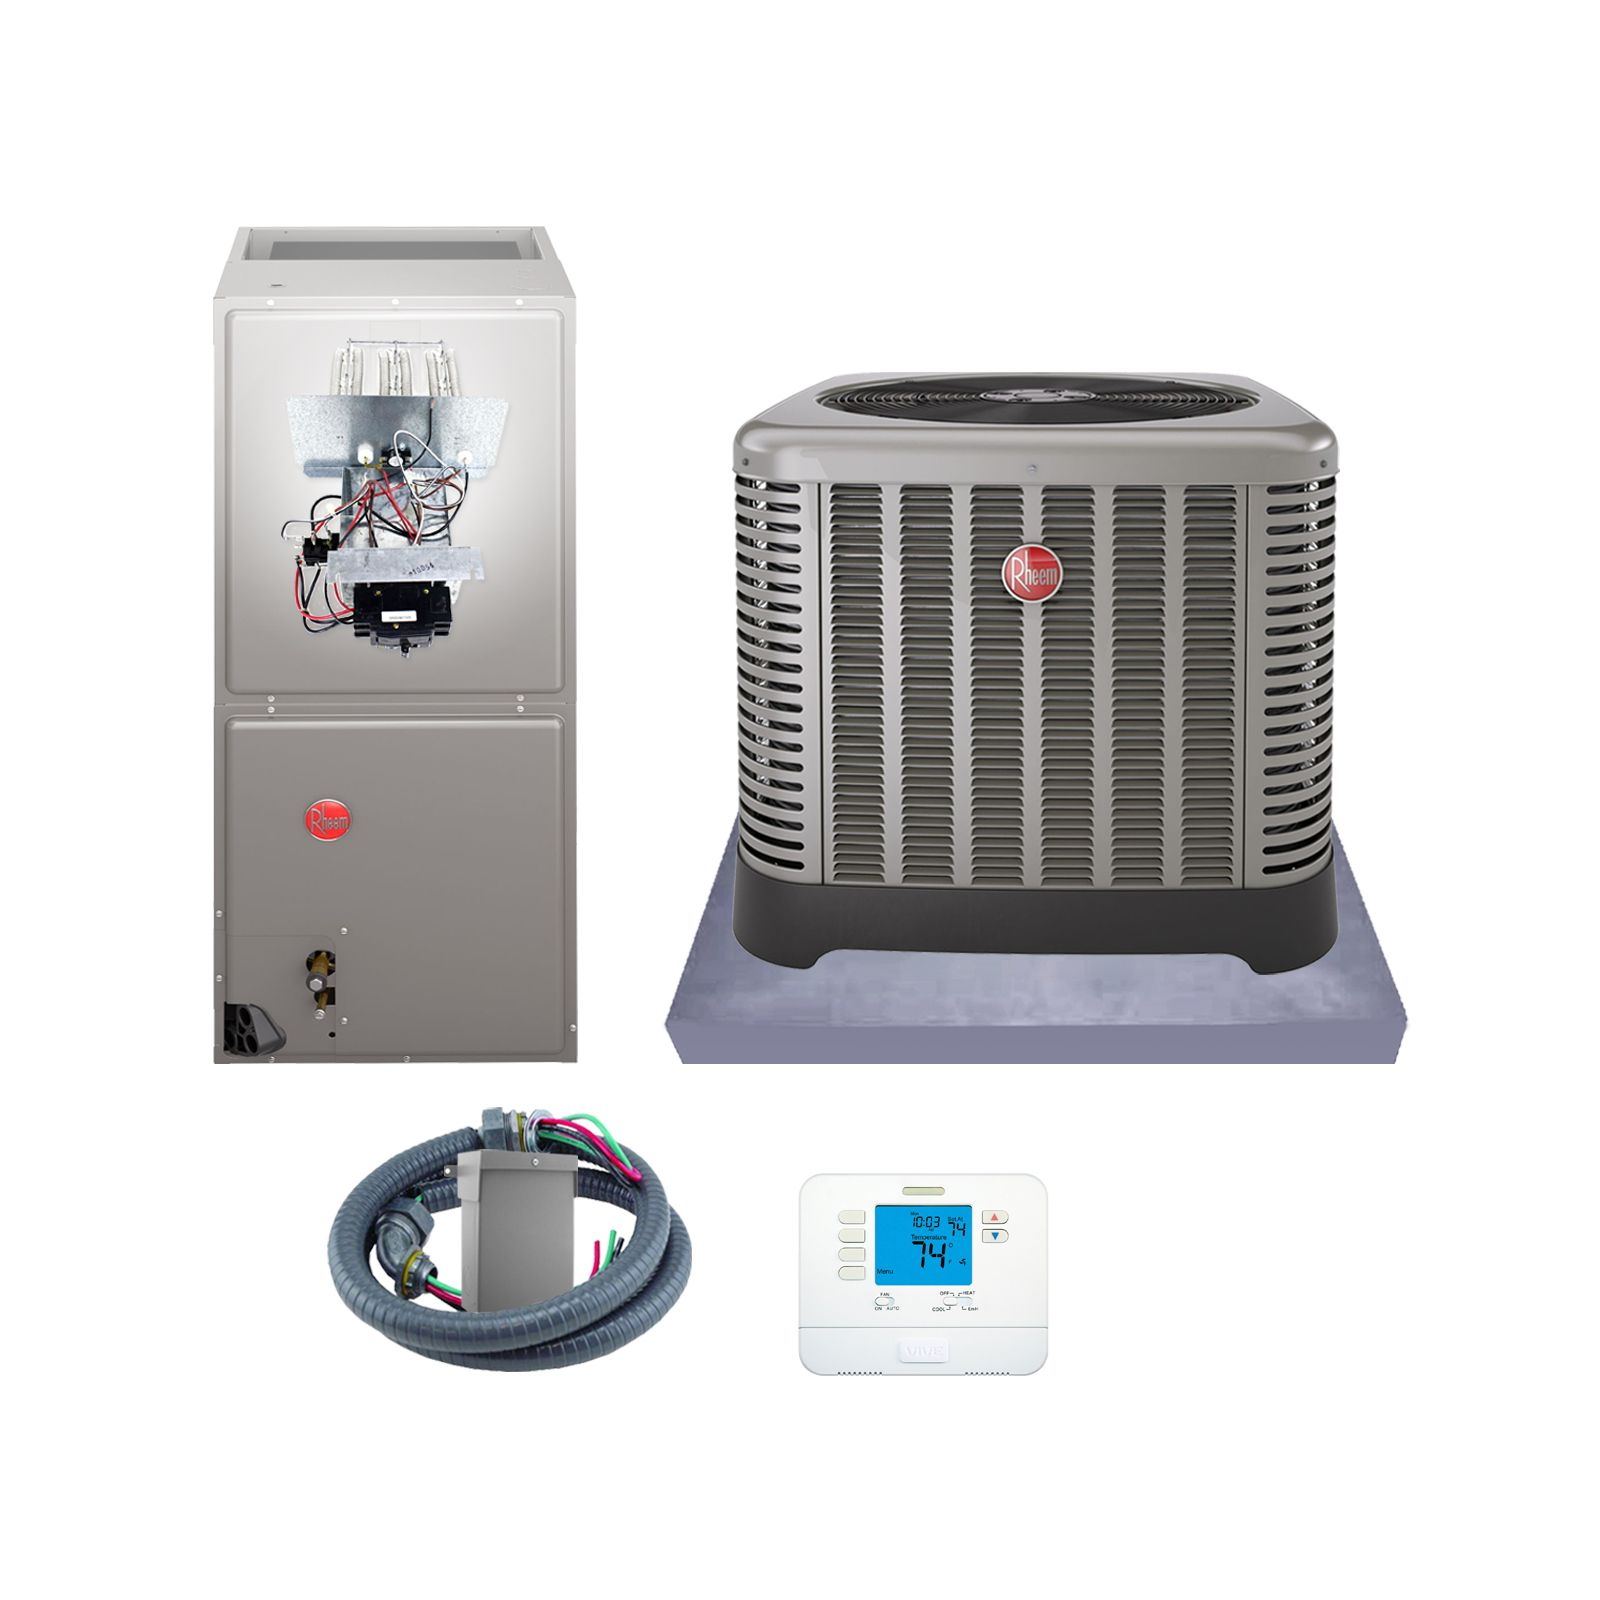 Rheem (AHRI 7512254) 5 Ton, 15 SEER/12.5 EER Classic Series, Heat Pump Split System and Install Kit